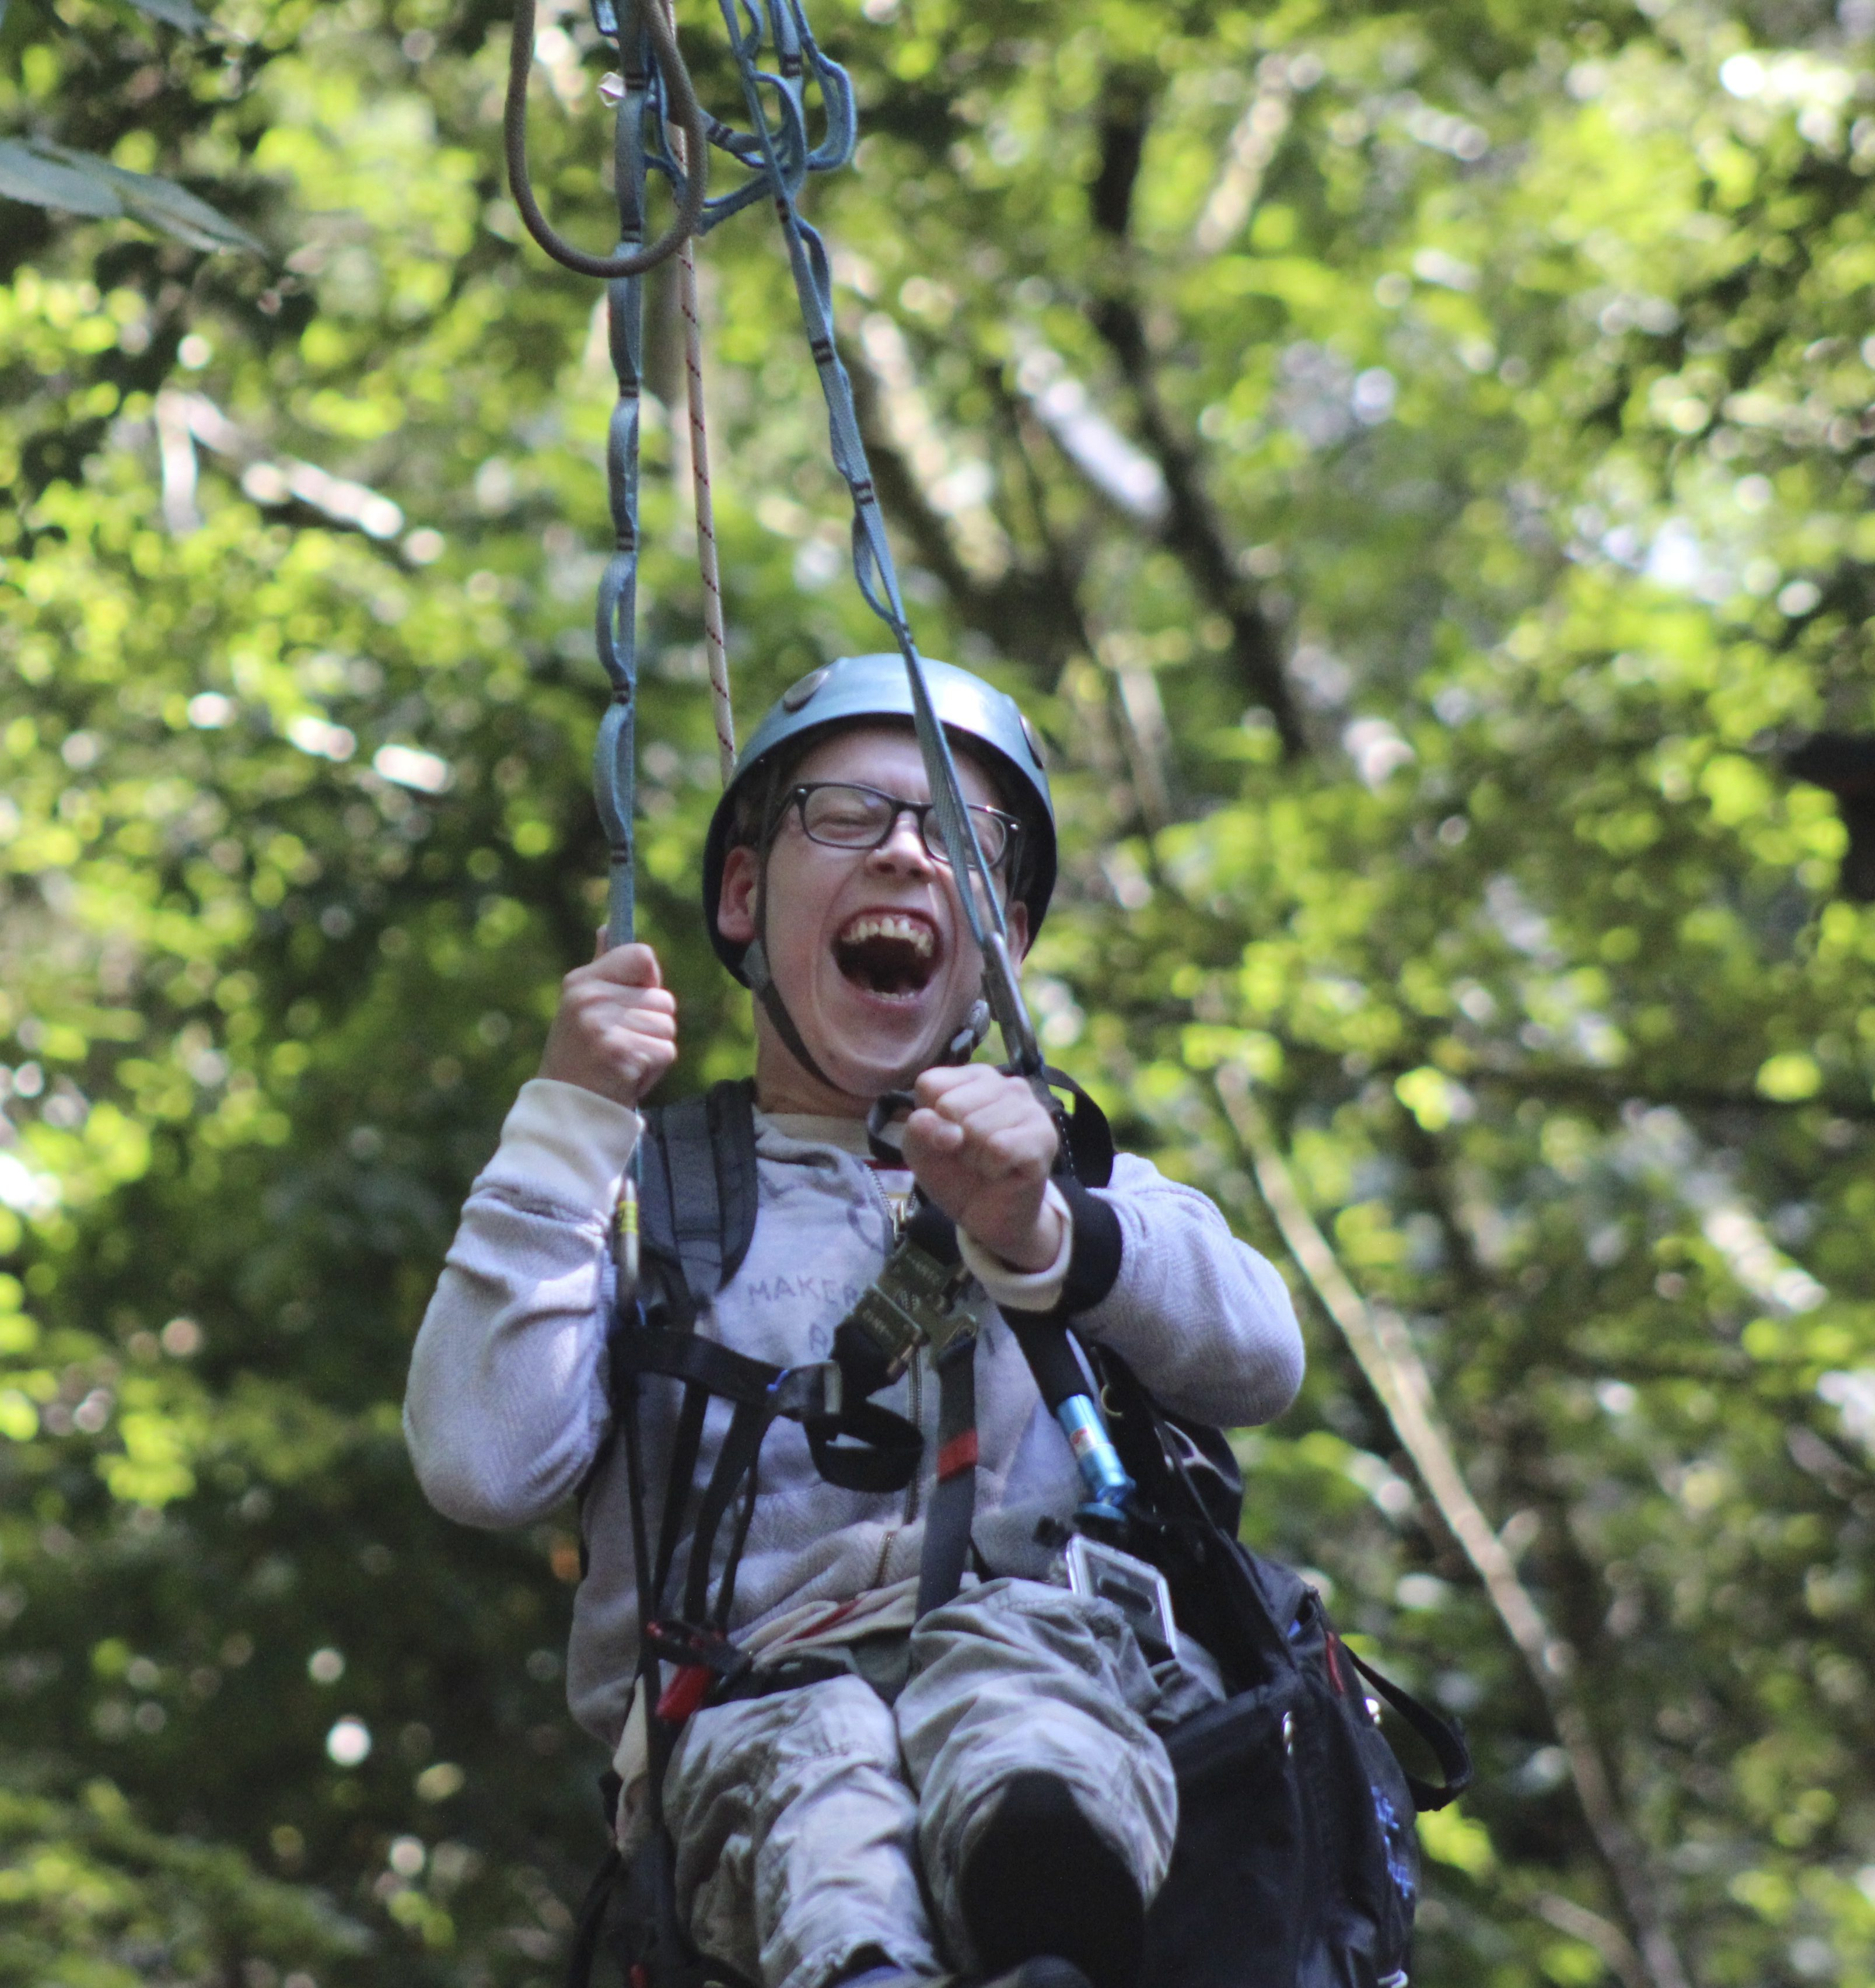 boy-on-zip-for-inclusion-bids